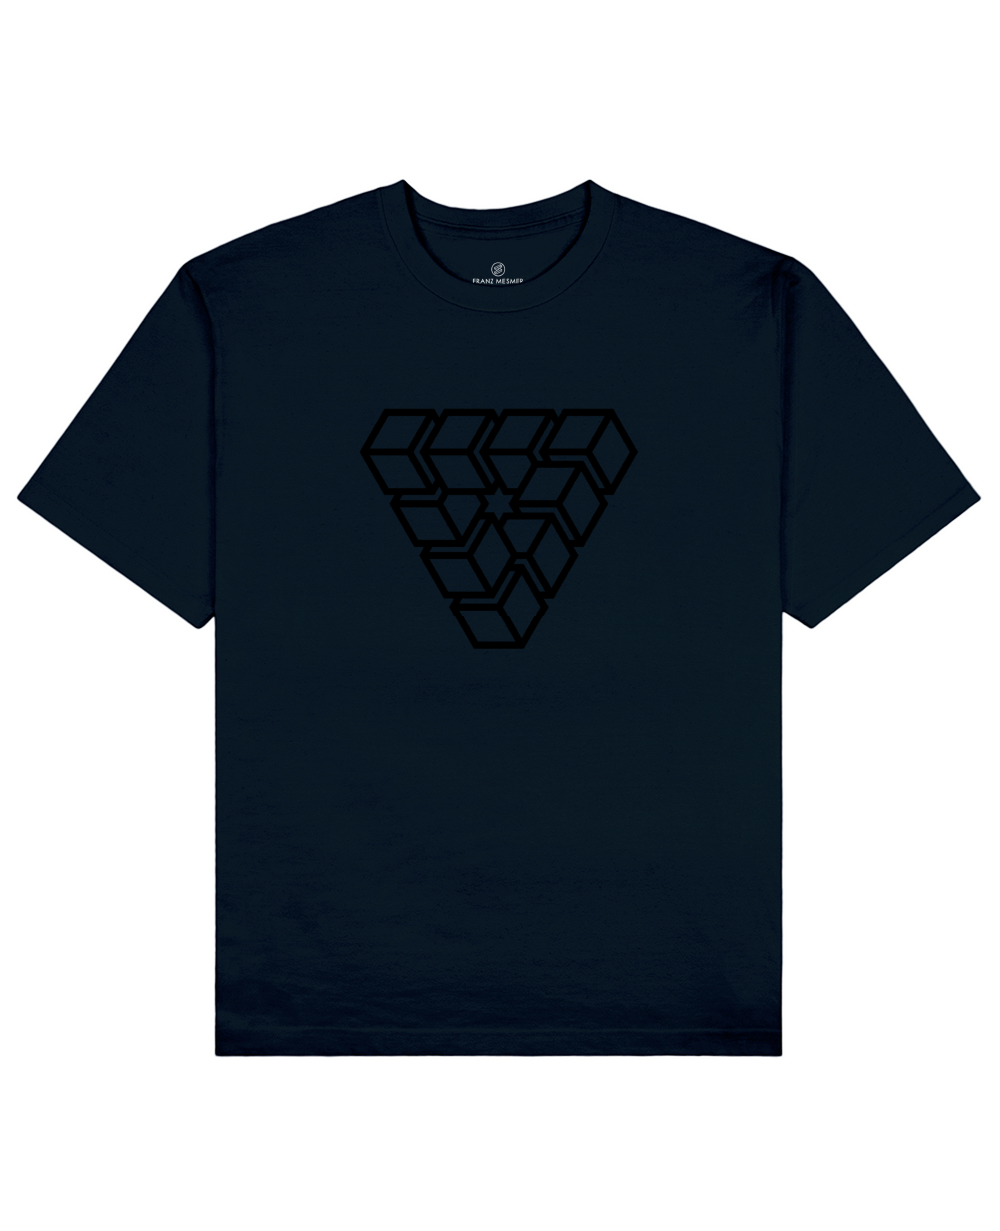 Impossible Shape Print T-Shirt in Navy - T-Shirts - Franz Mesmer - BRANMA